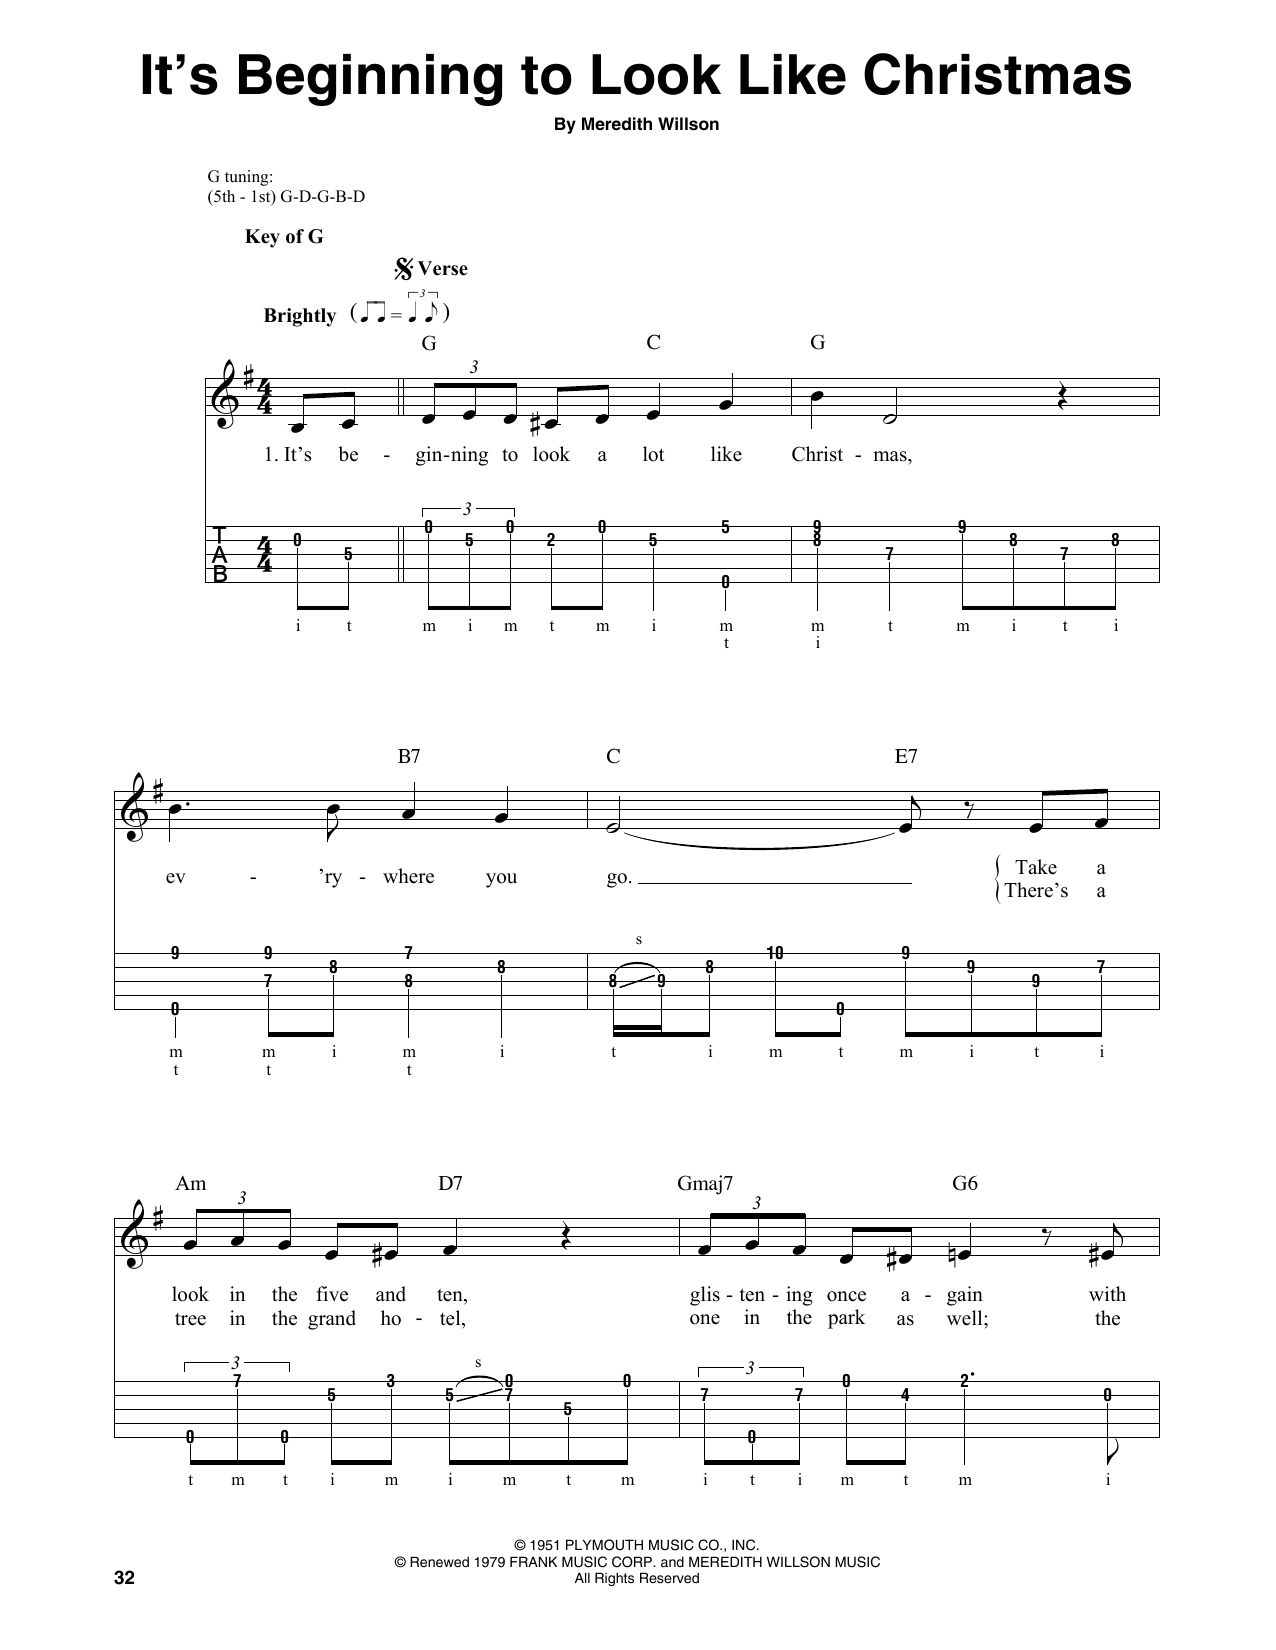 Sheet Music Digital Files To Print - Licensed Meredith Willson ...